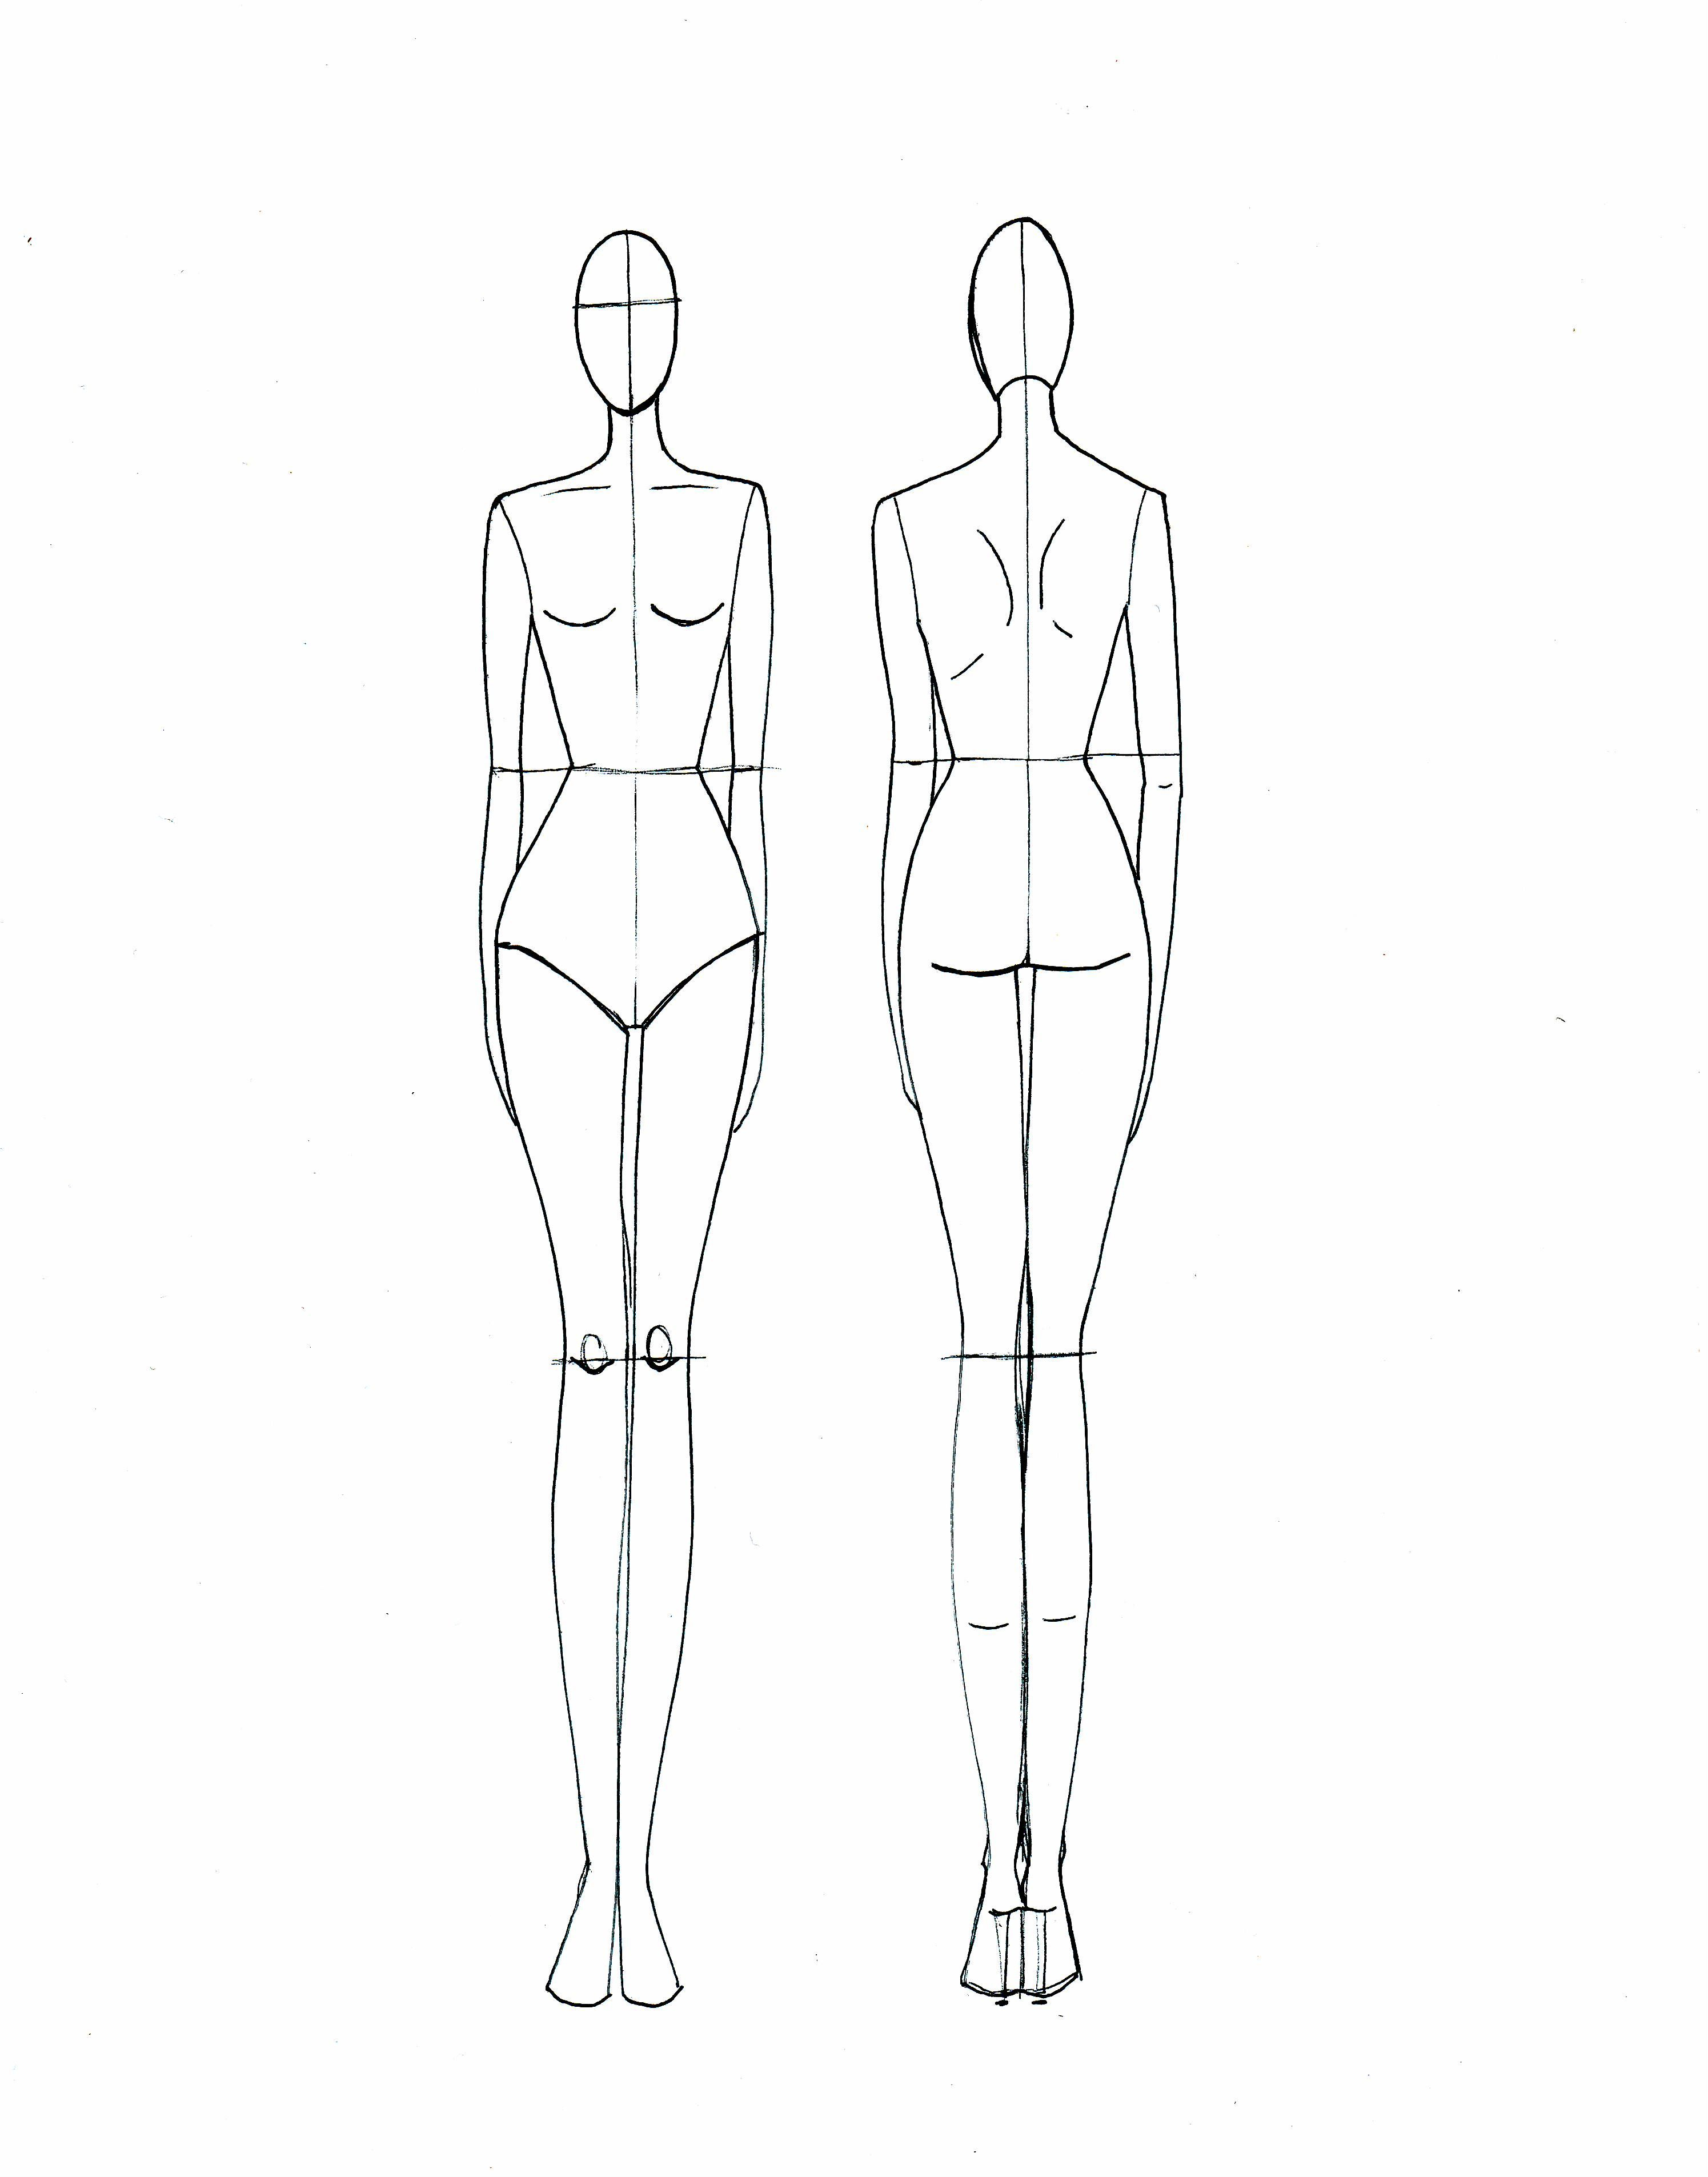 Fashion Drawing Template | For A Rainy Day | Fashion Illustration - Free Printable Fashion Model Templates